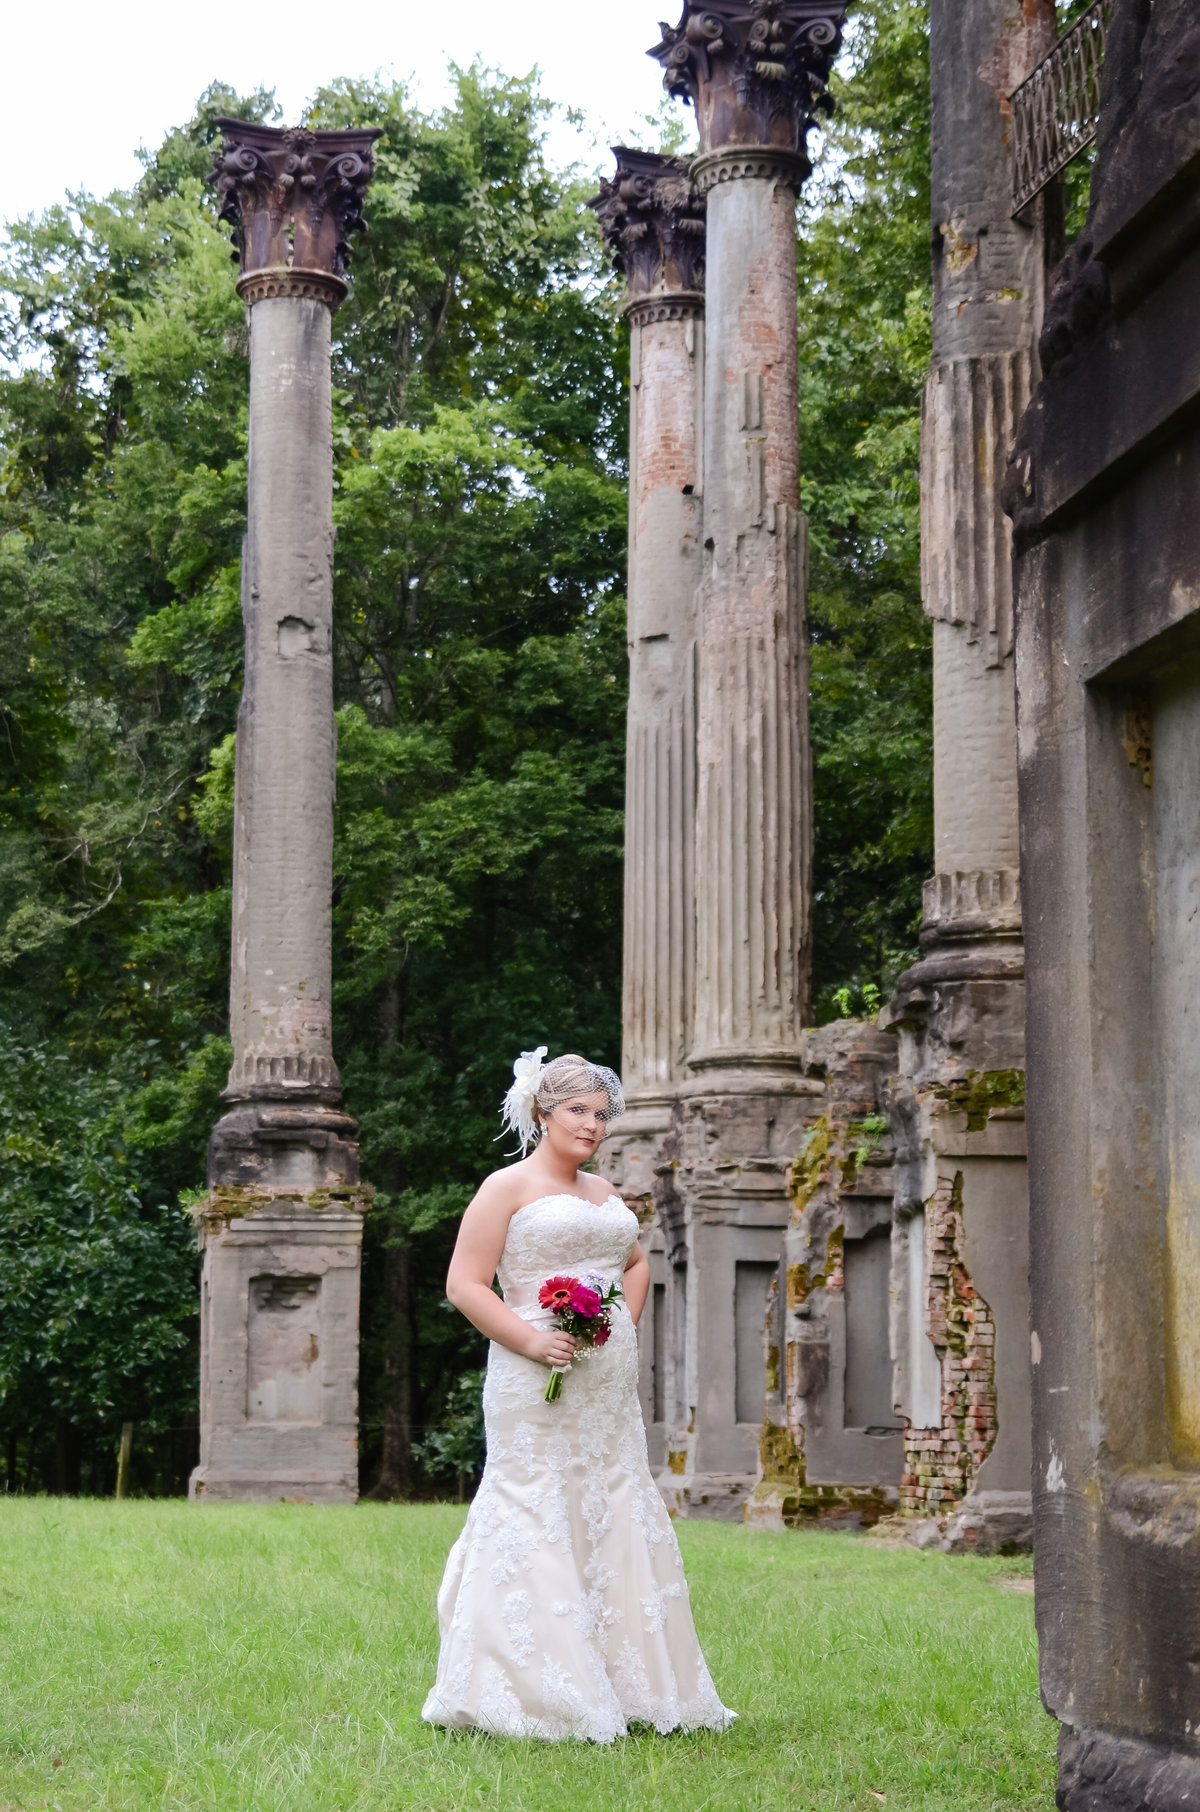 Beautiful bridal portrait photography: Bride with bouquet among the ruins of Windsor plantation in Port Gibson Mississippi